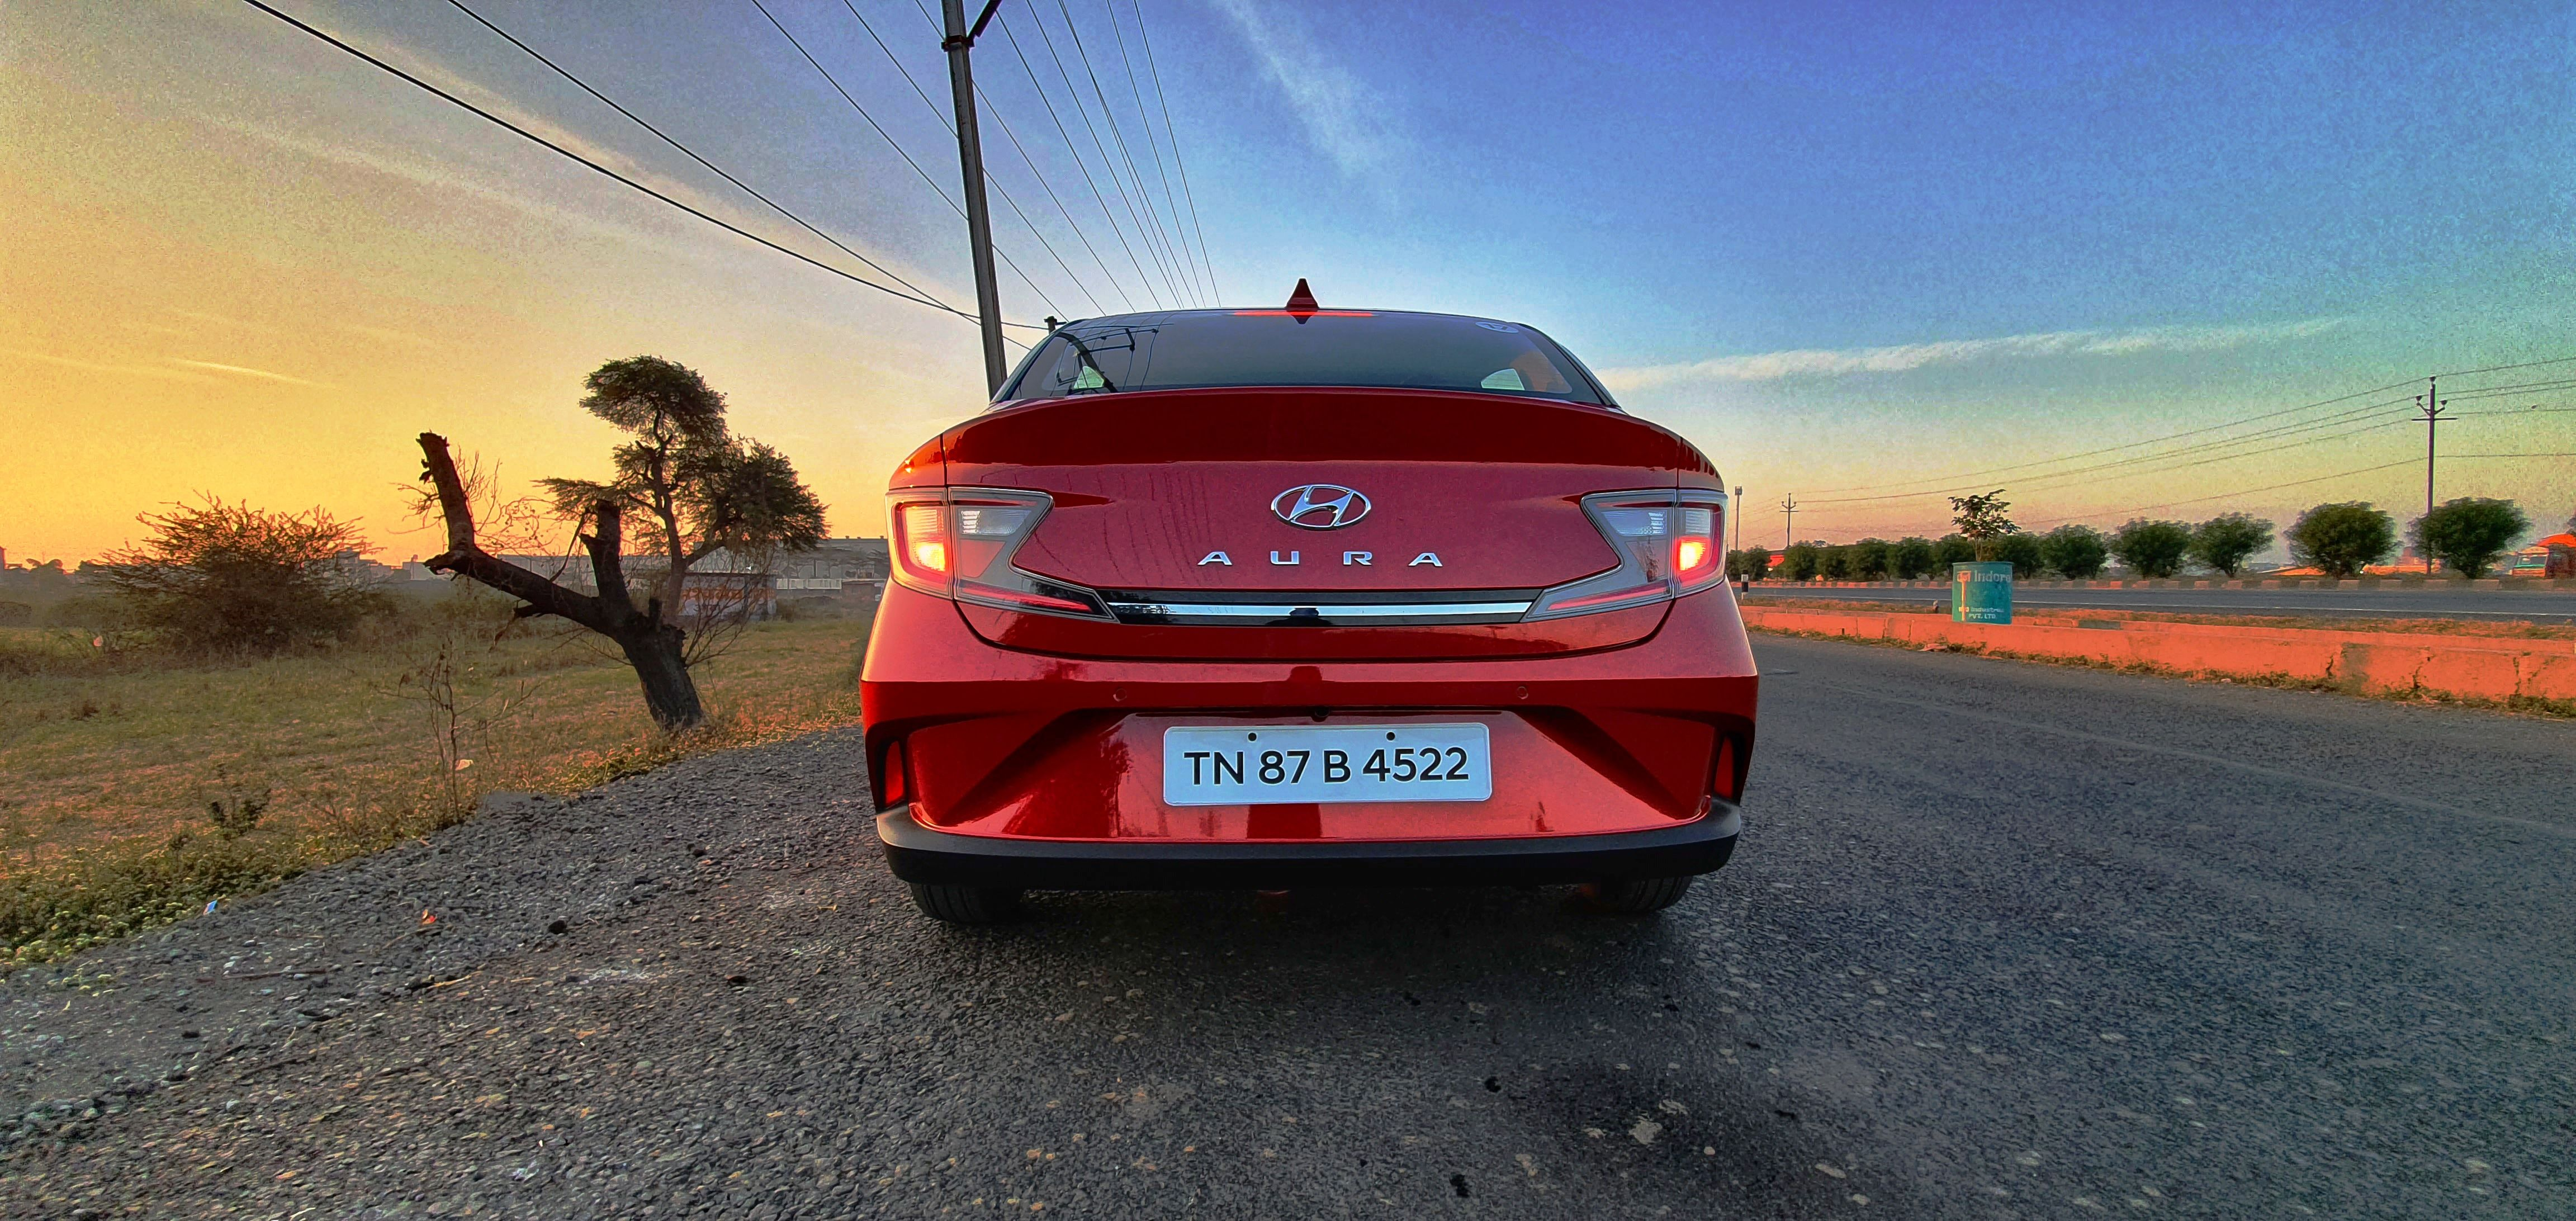 Over at the rear, the car features Z-shaped tail lights which has a chrome strip running between the two. (Sabyasachi Dasgupta/HT Auto Photo)